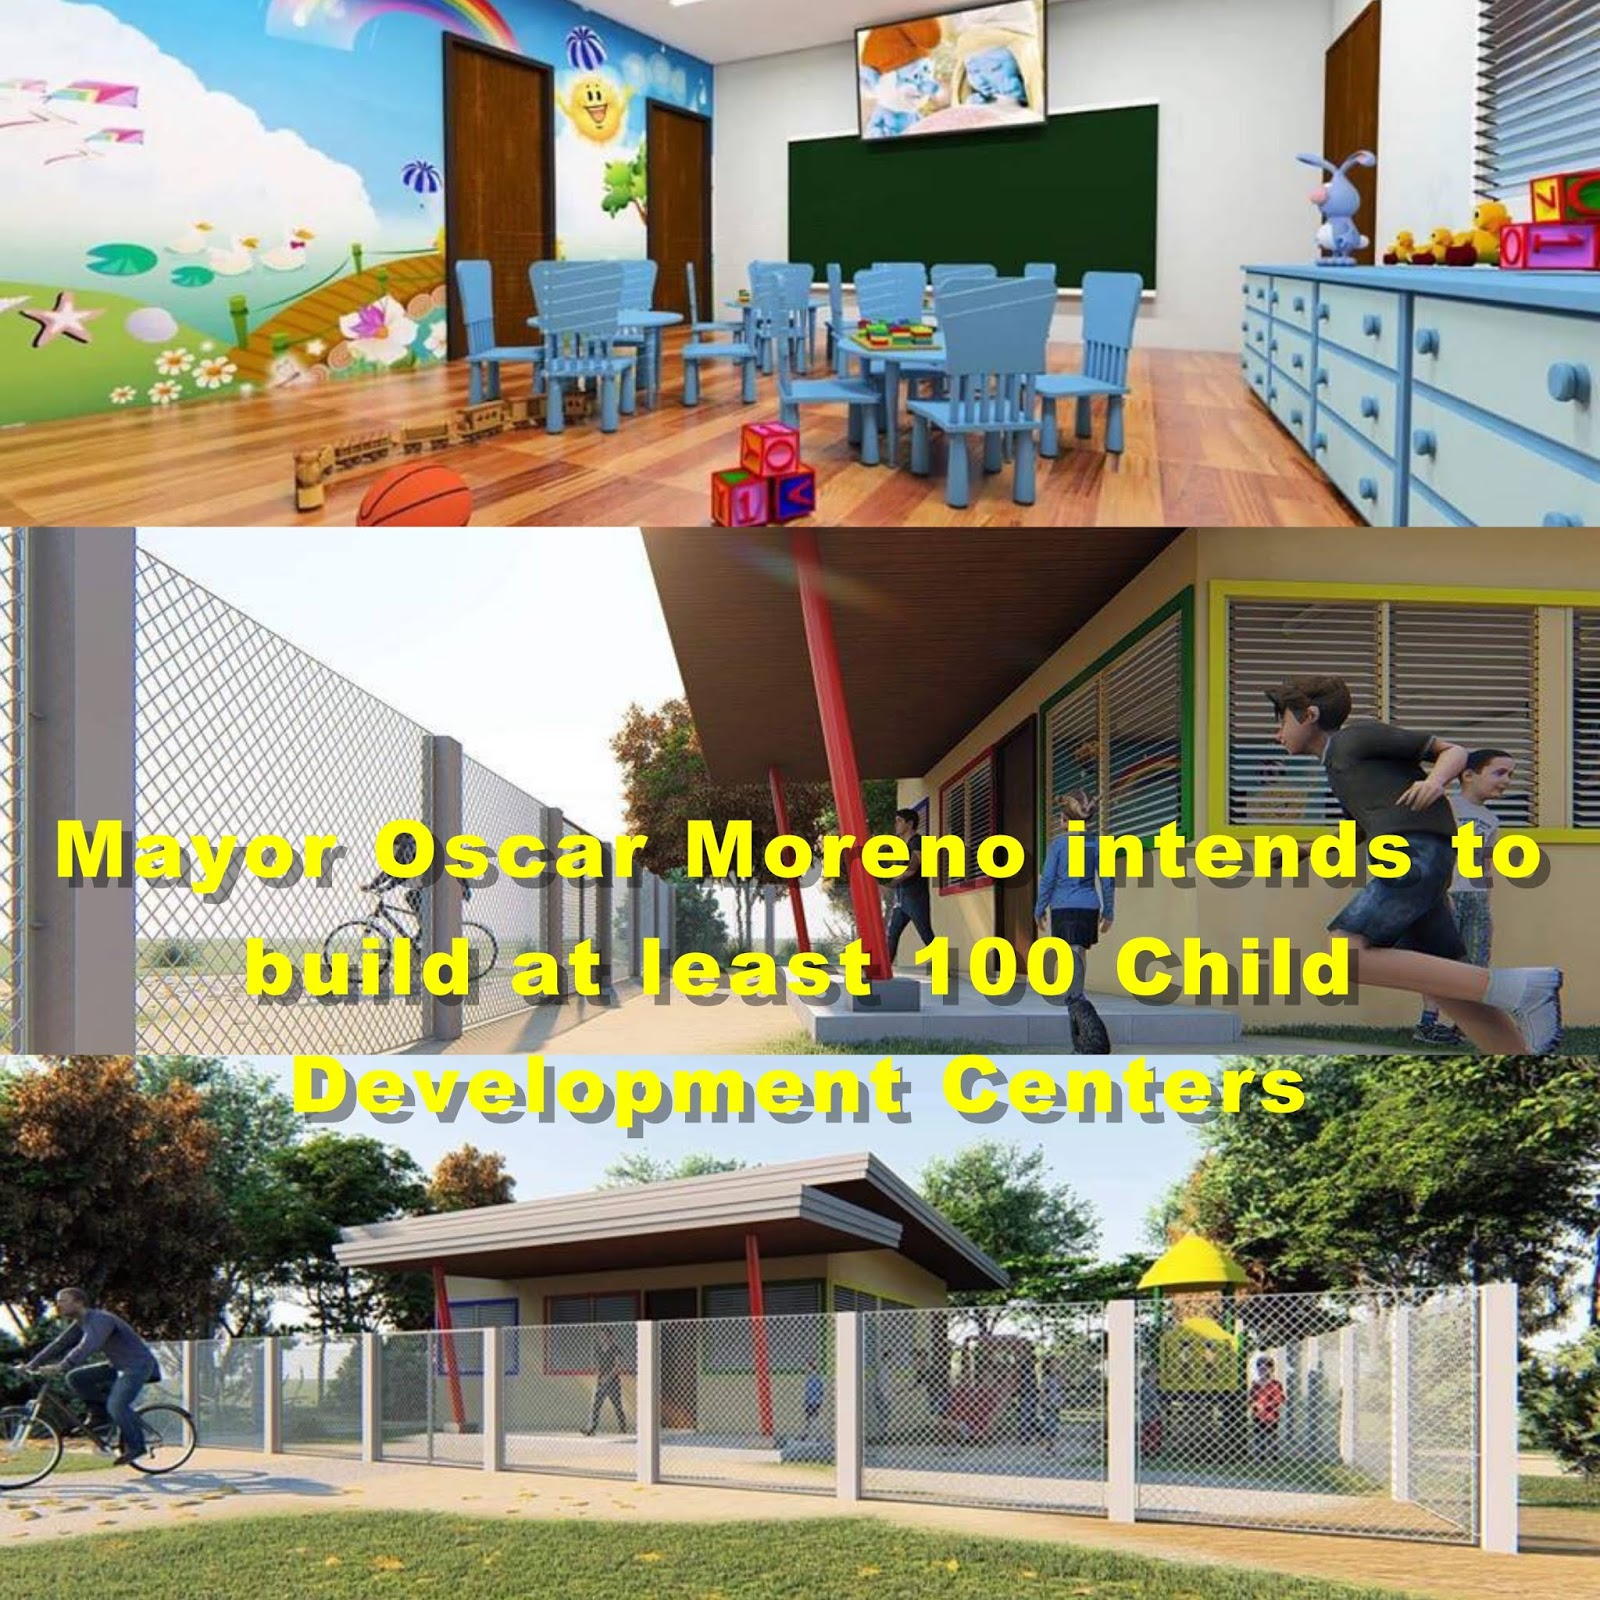 Mayor Oscar Moreno intends to build at least 100 Child Development Centers